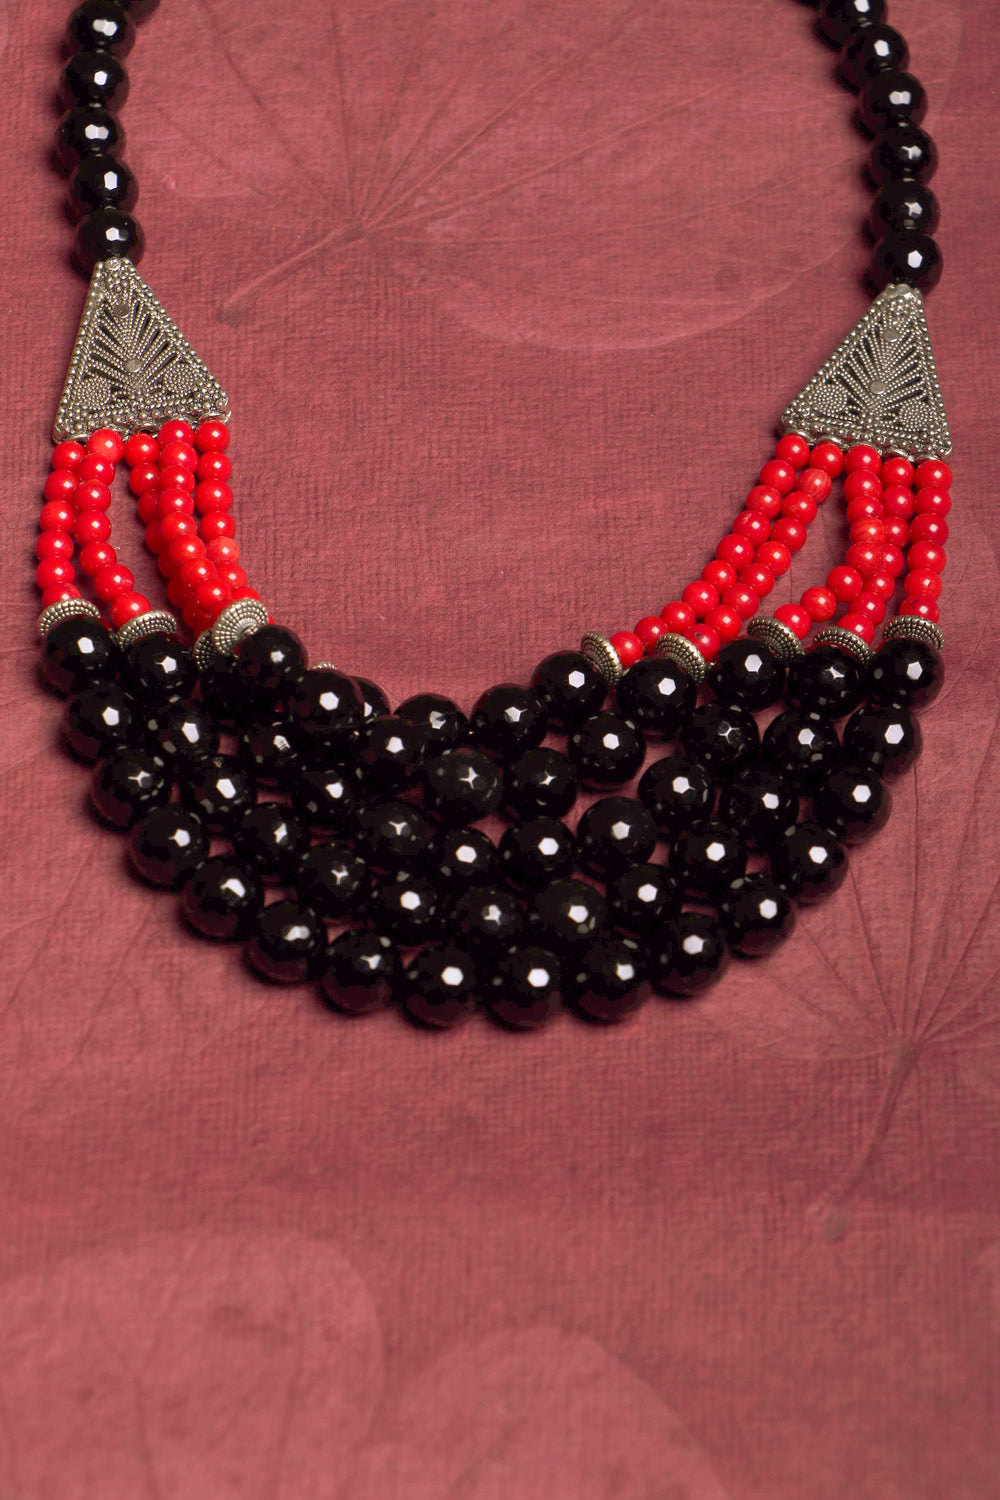 Layered black onyx and red coral neck piece, with German silver accents.